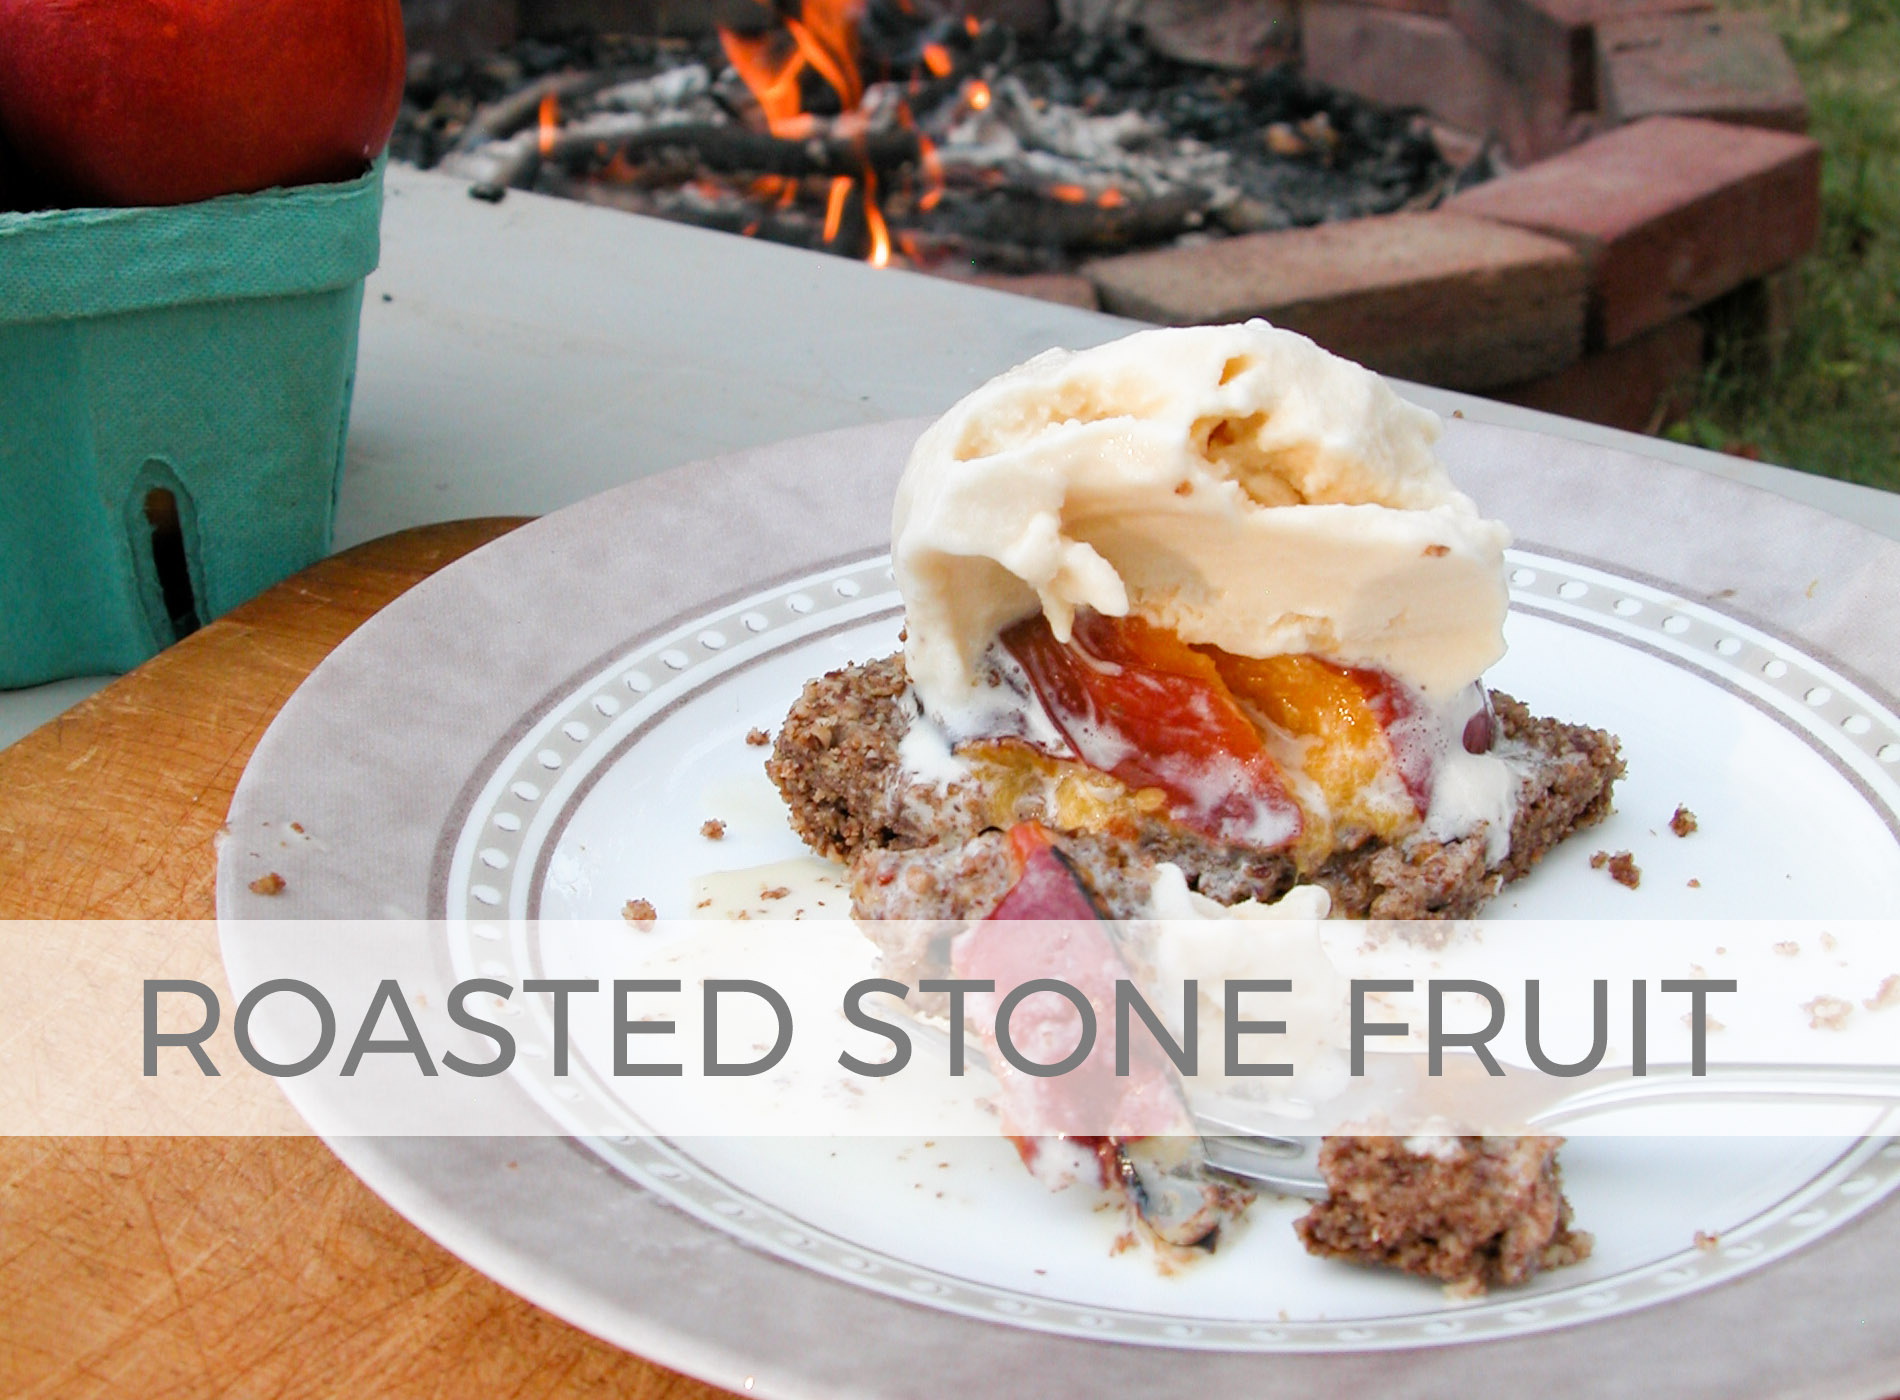 Roasted Stone Fruit Dessert Recipe by Larissa of Prodigal Pieces | prodigalpieces.com